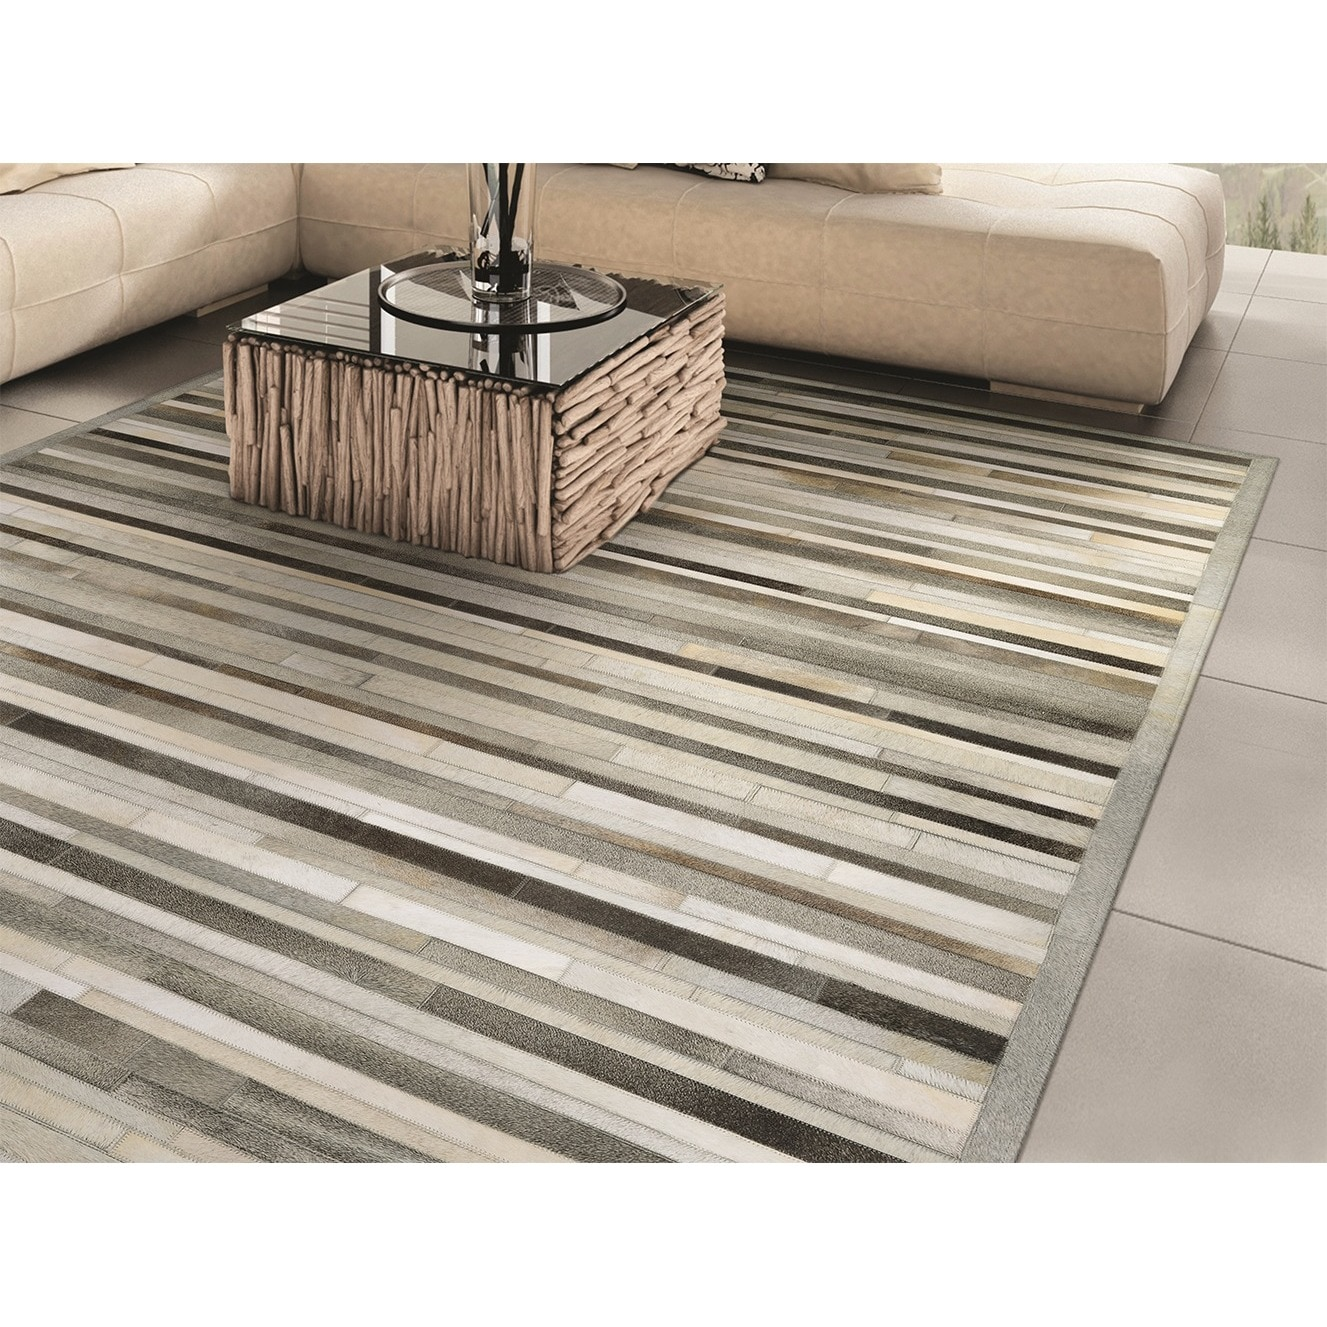 Couristan Chalet Plank Grey Ivory Cowhide Leather Area Rug 5 6 X 8 Free Shipping Today Com 17125661